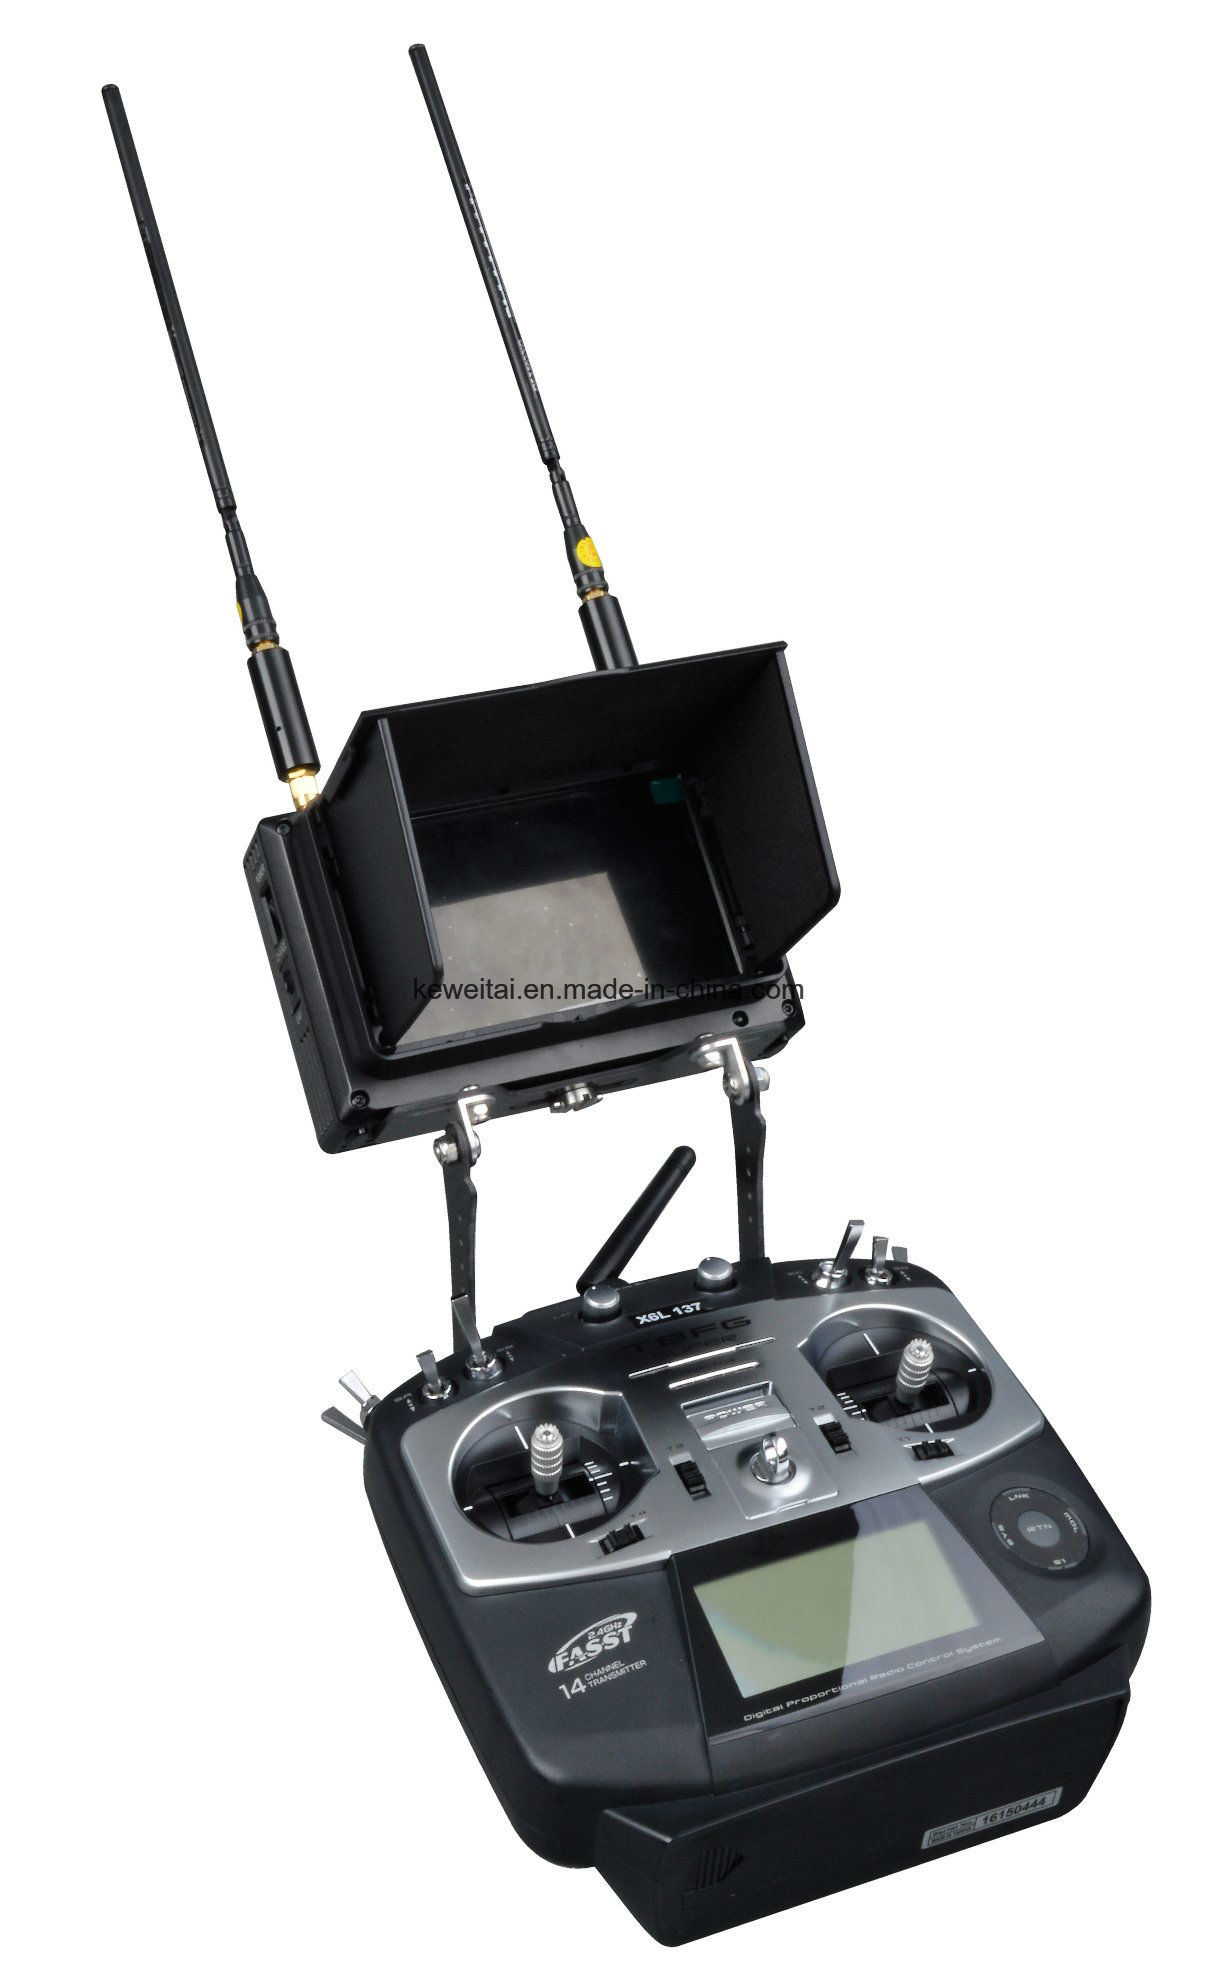 Fpv Cofdm Handheld Image Receiver Mounted on Drone Remote Controller